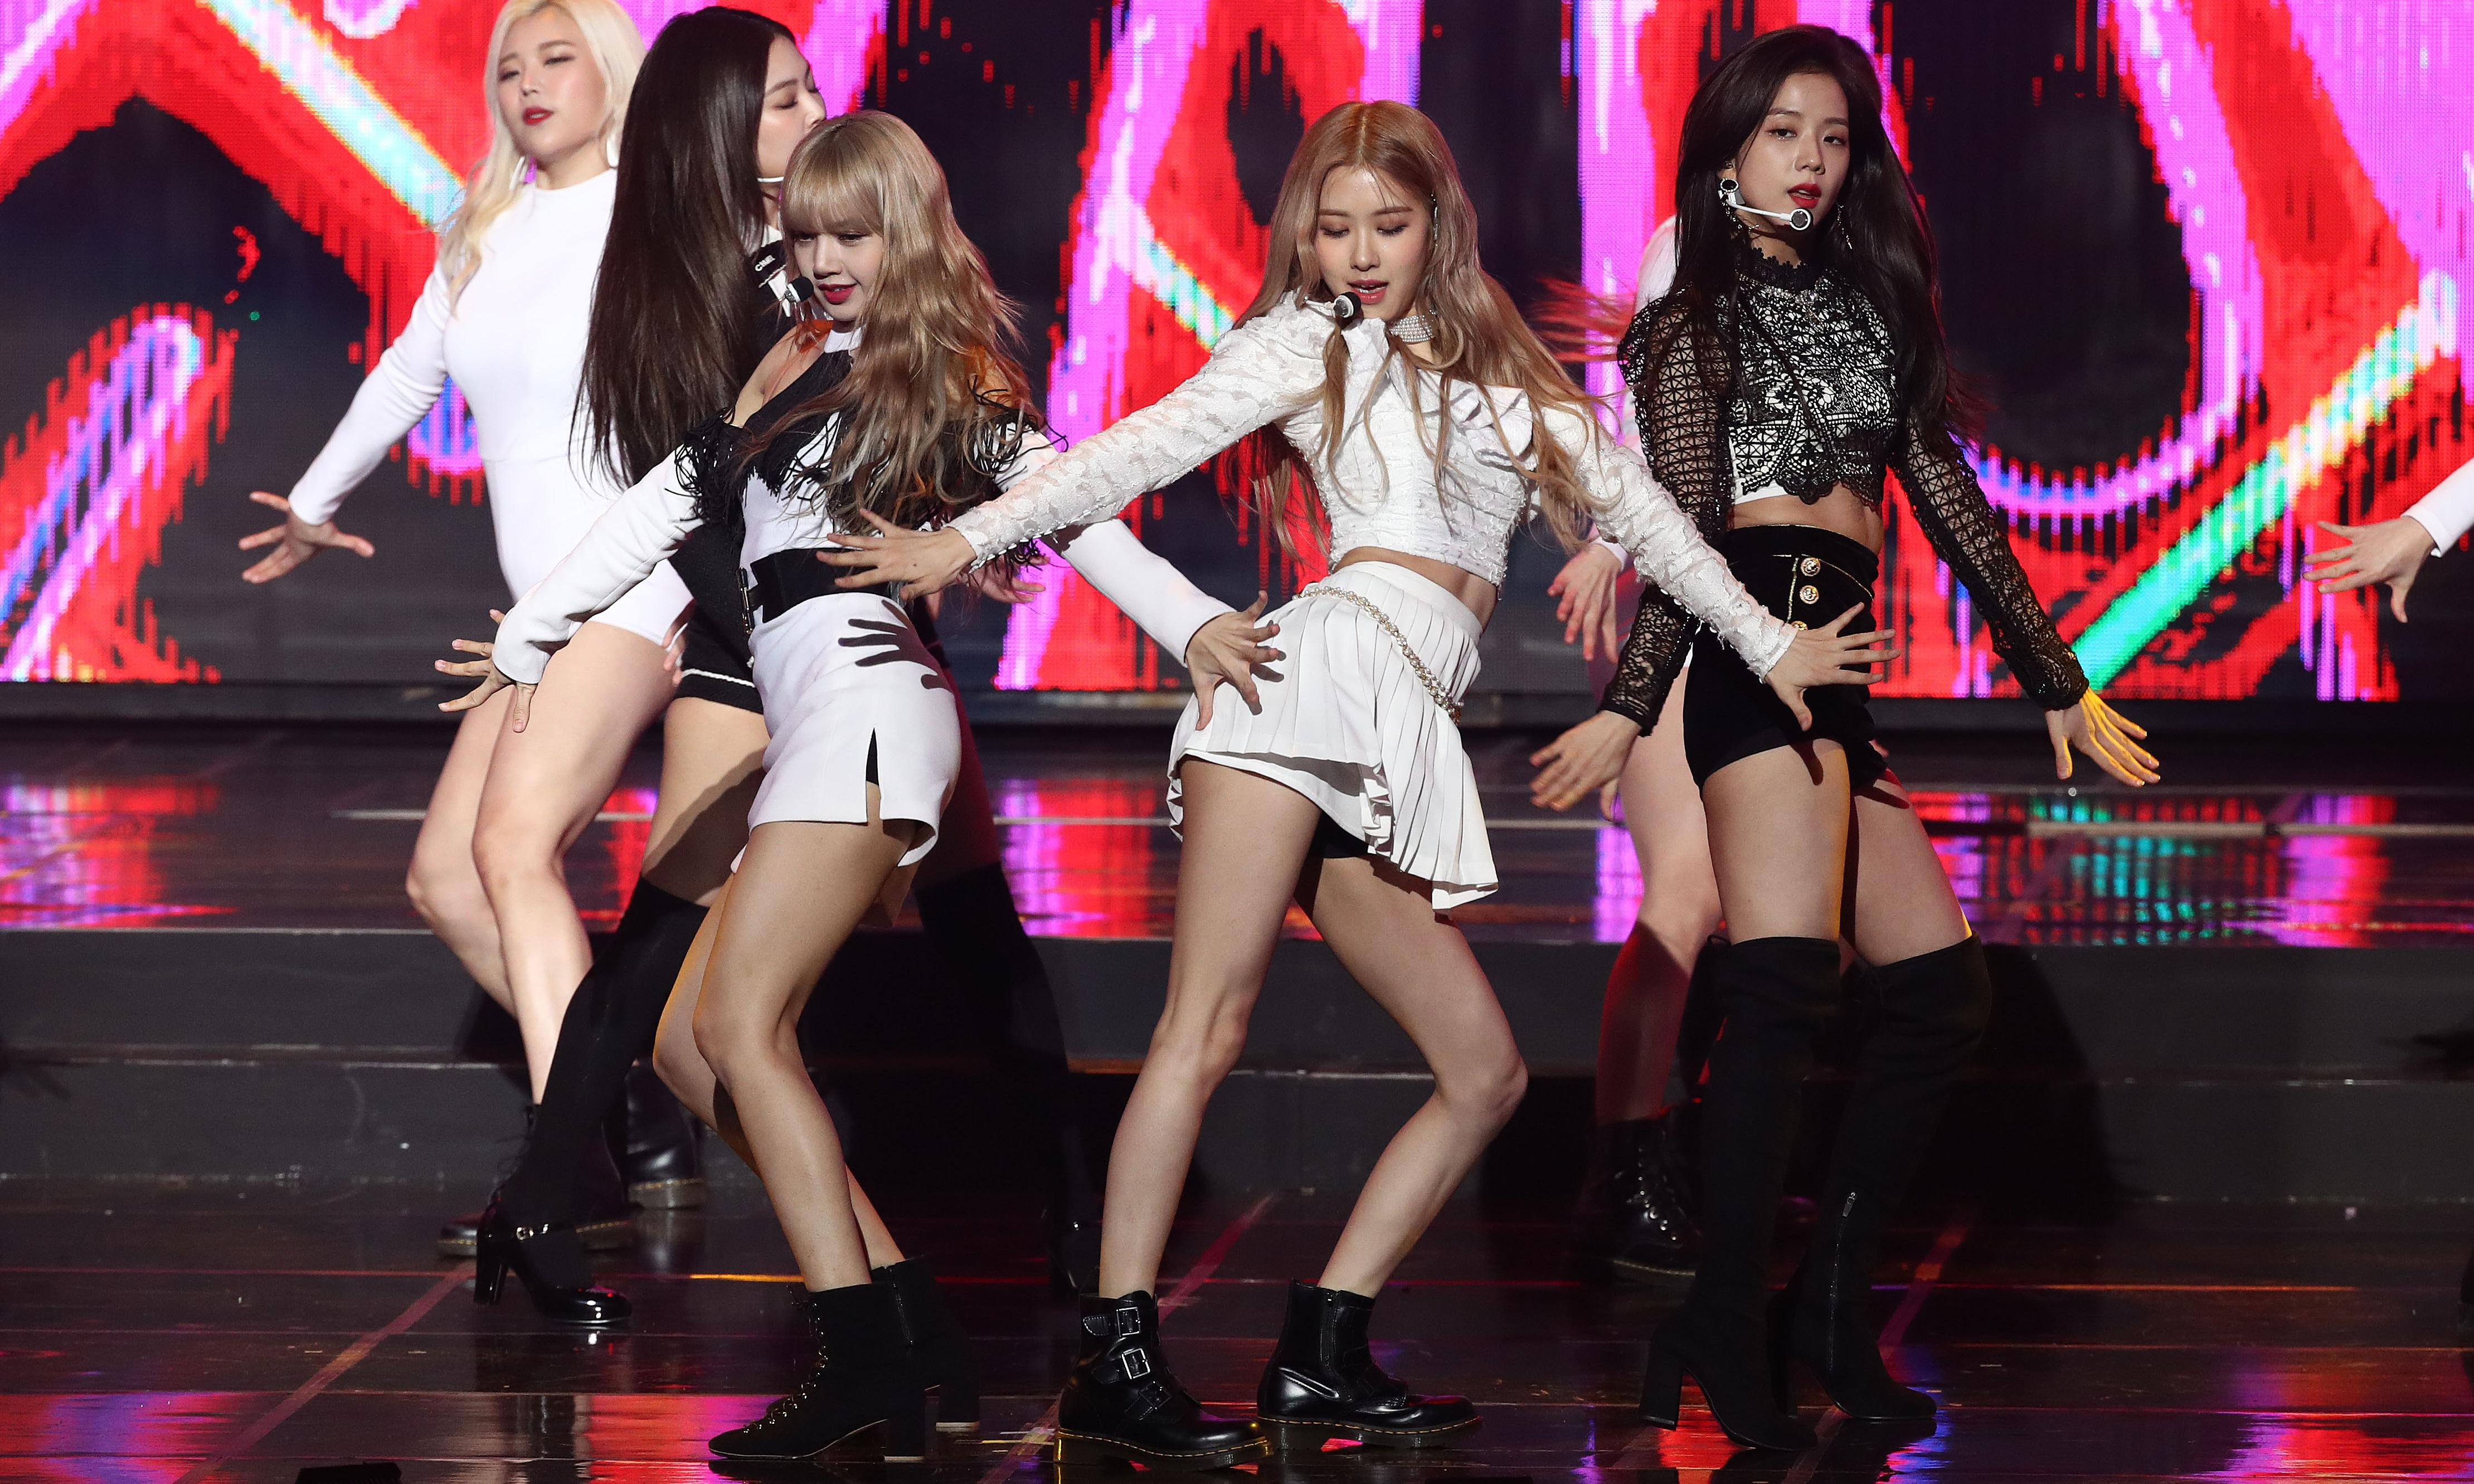 Ddu-du you know? English is losing its grip as the language of pop